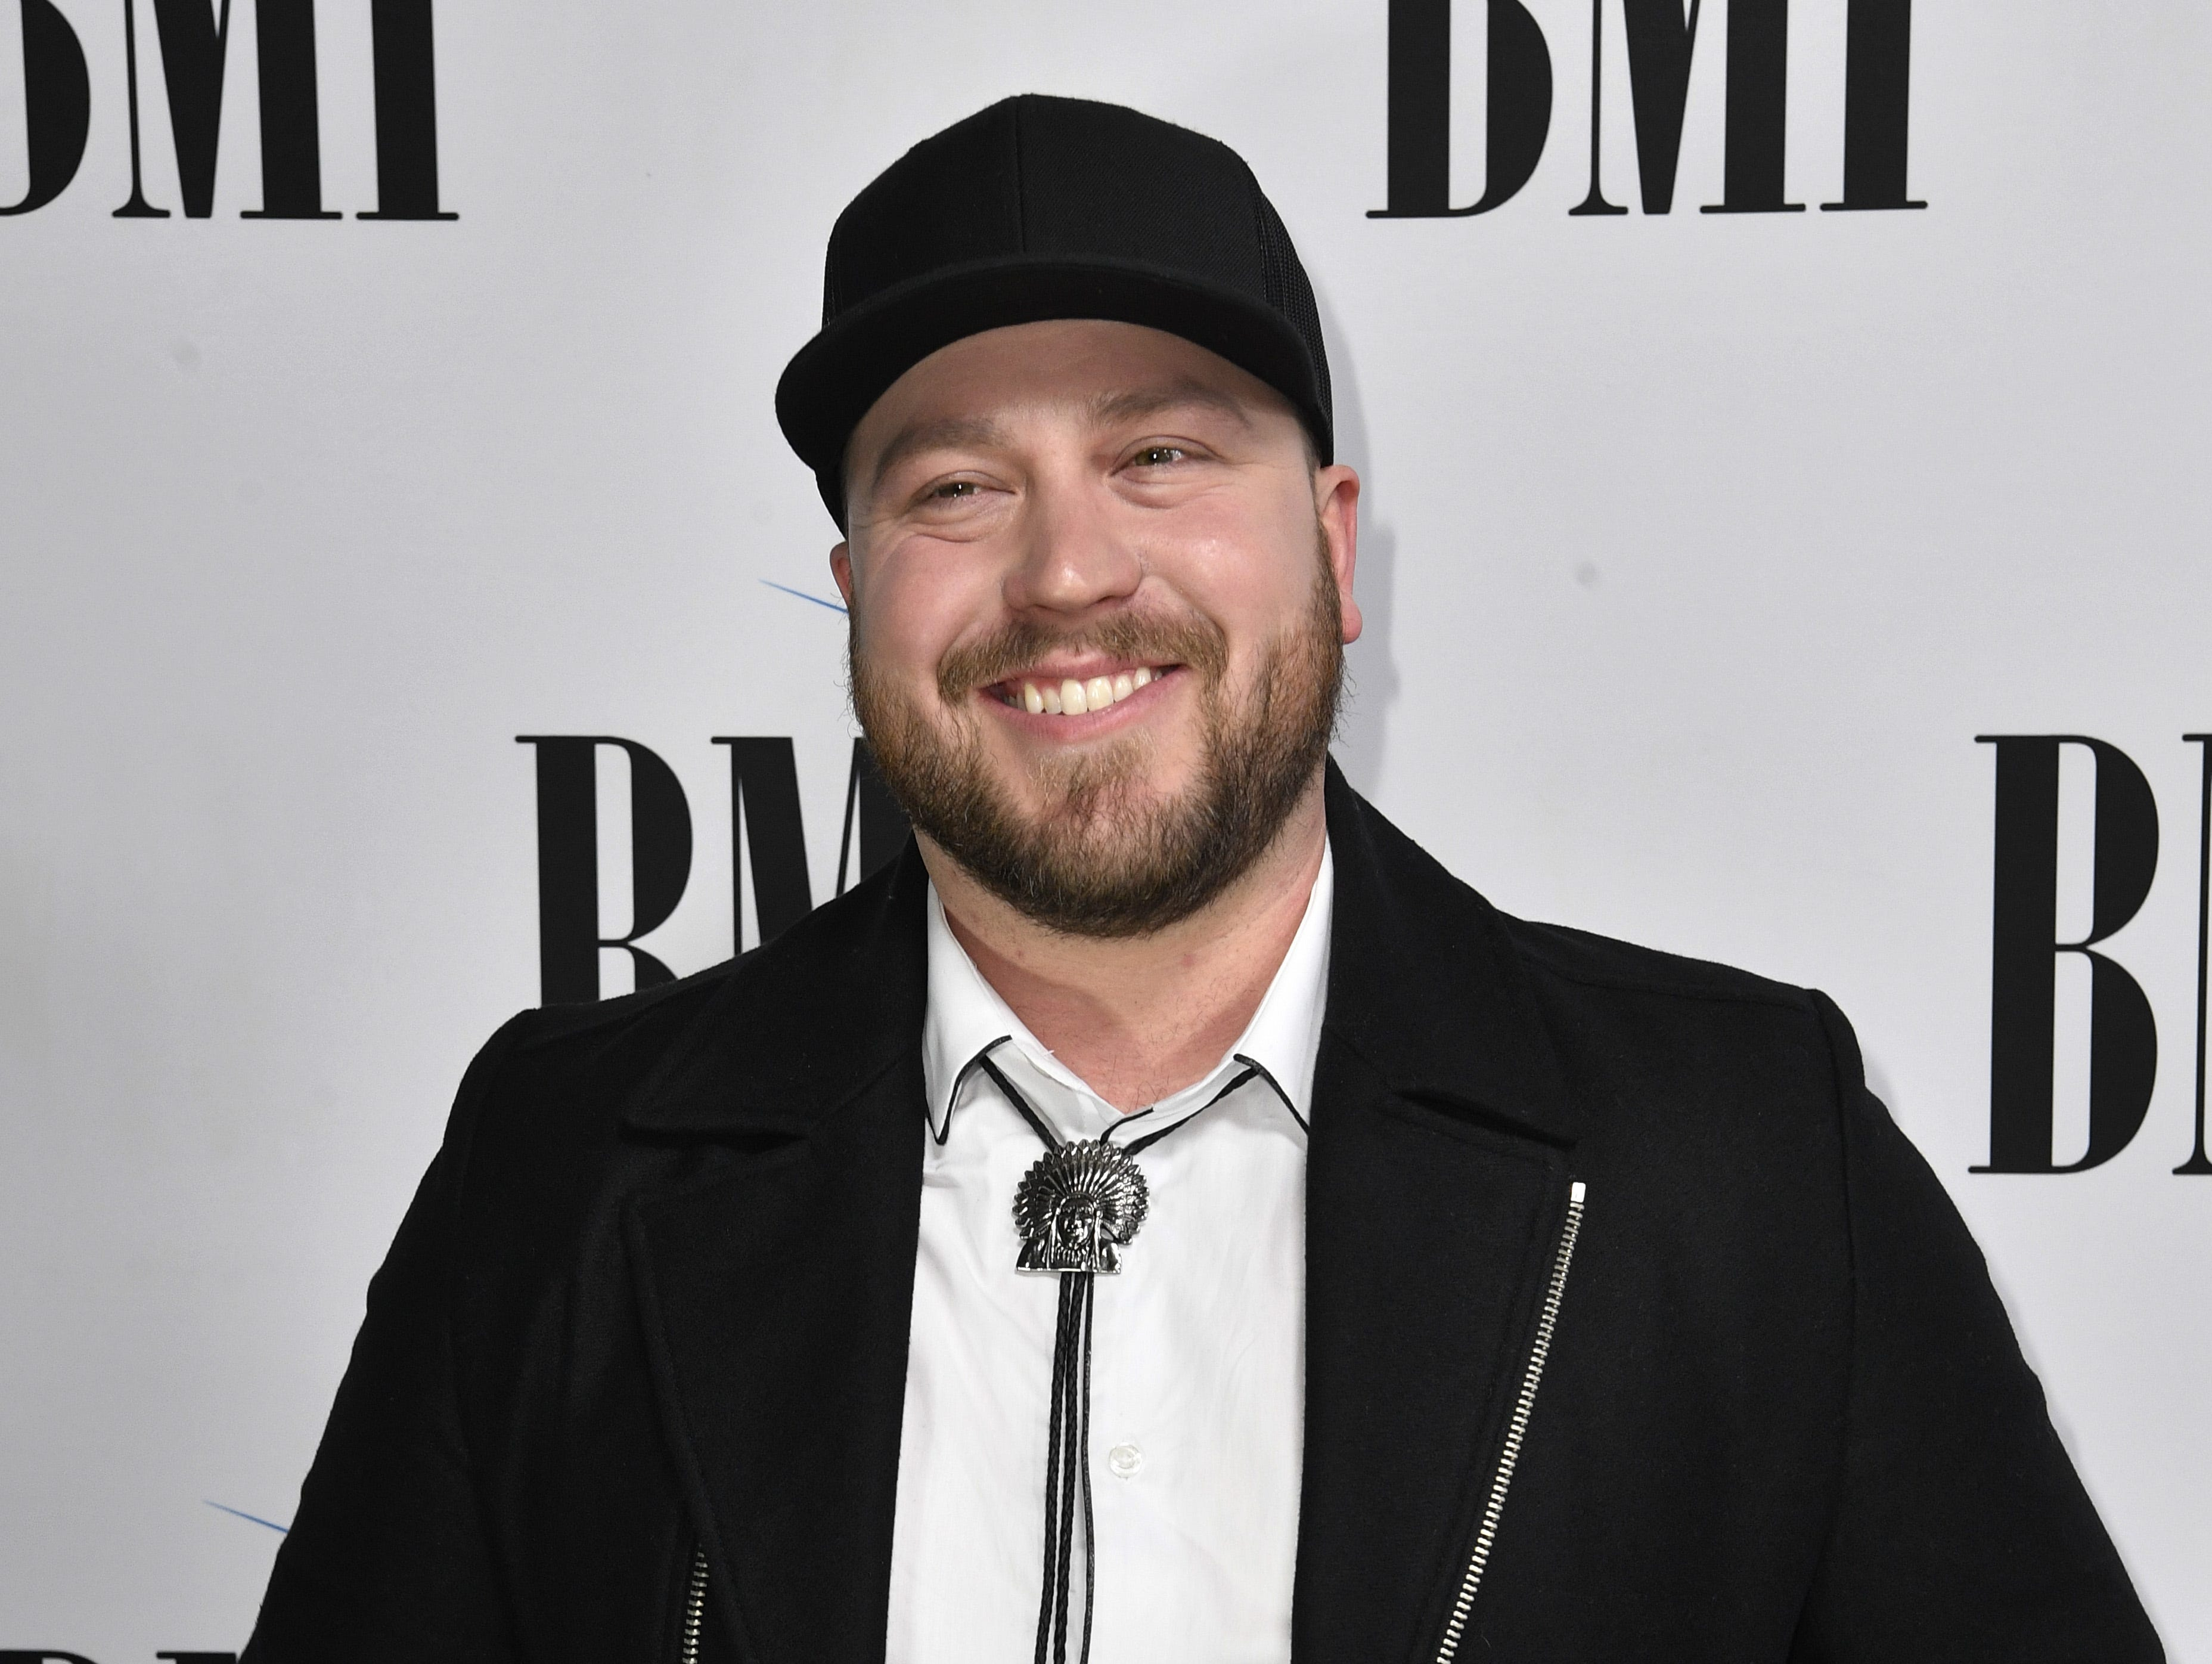 Mitchell Tenpenny is scheduled to play the Chevy Riverfront Stage at CMA Fest 2019.